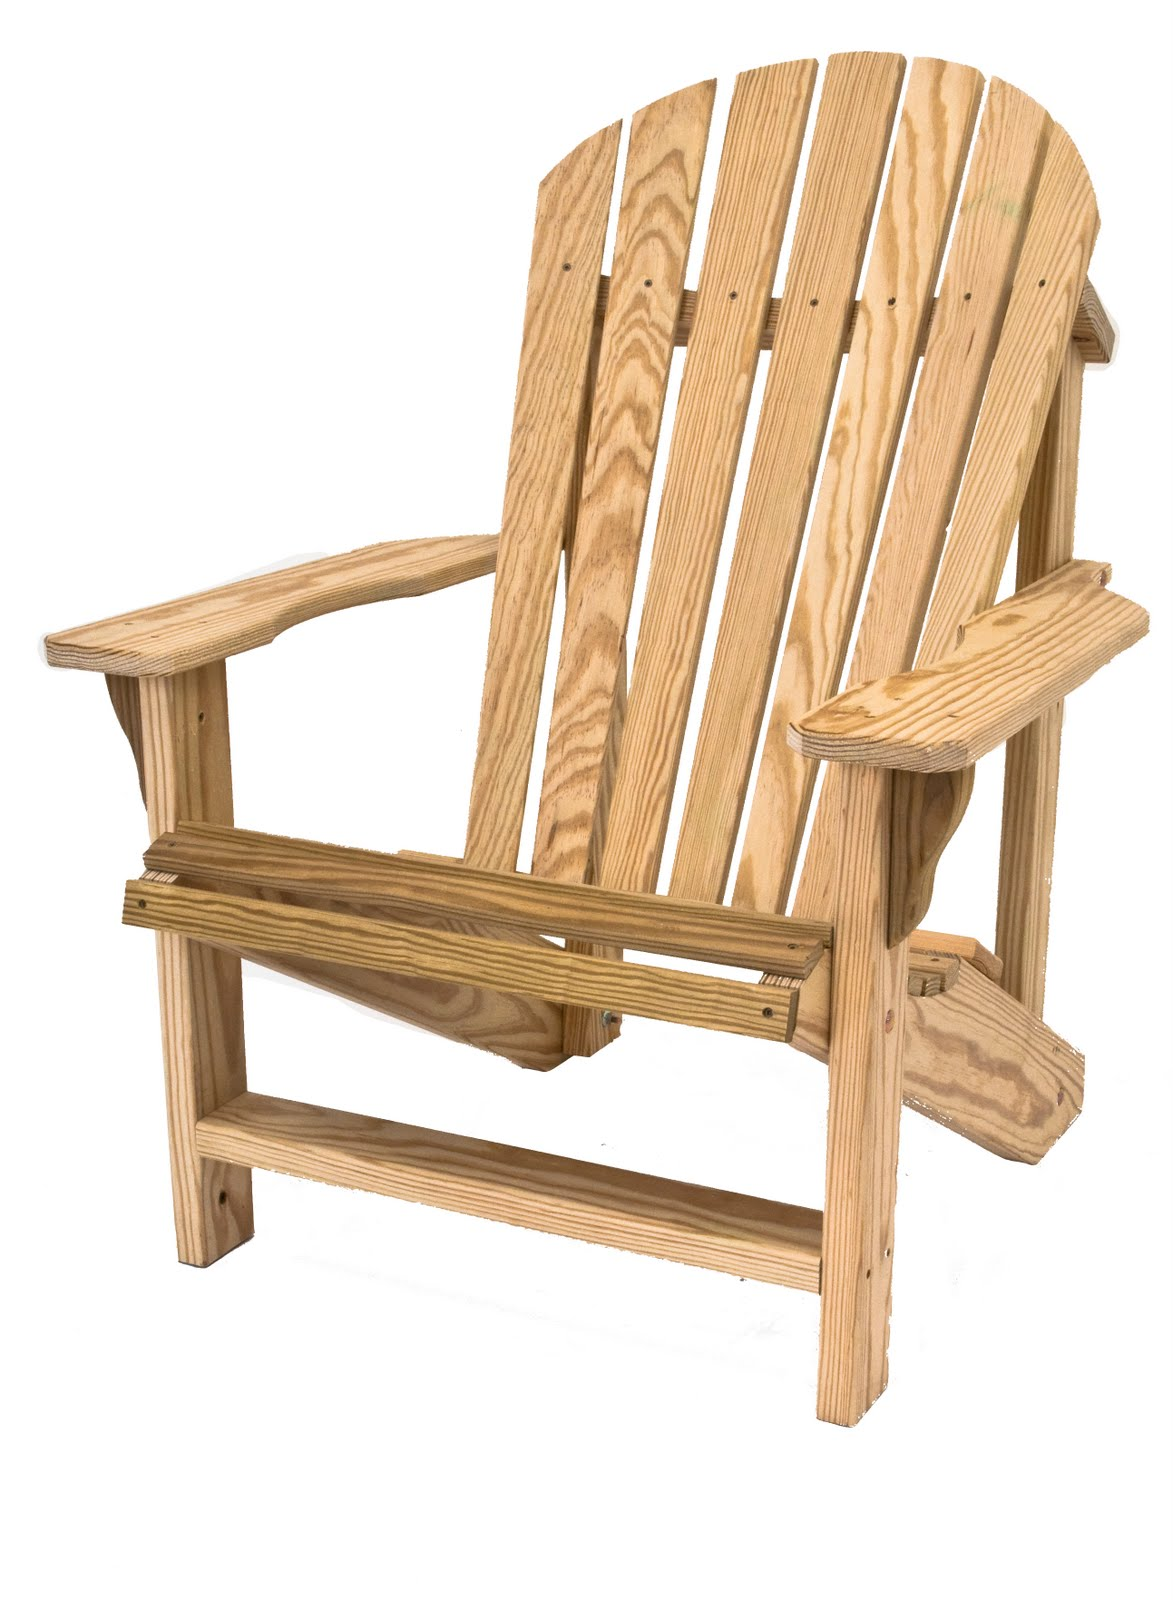 Adirondack Chairs Amish Pedicure Chair Manufacturers Originals Furniture Co